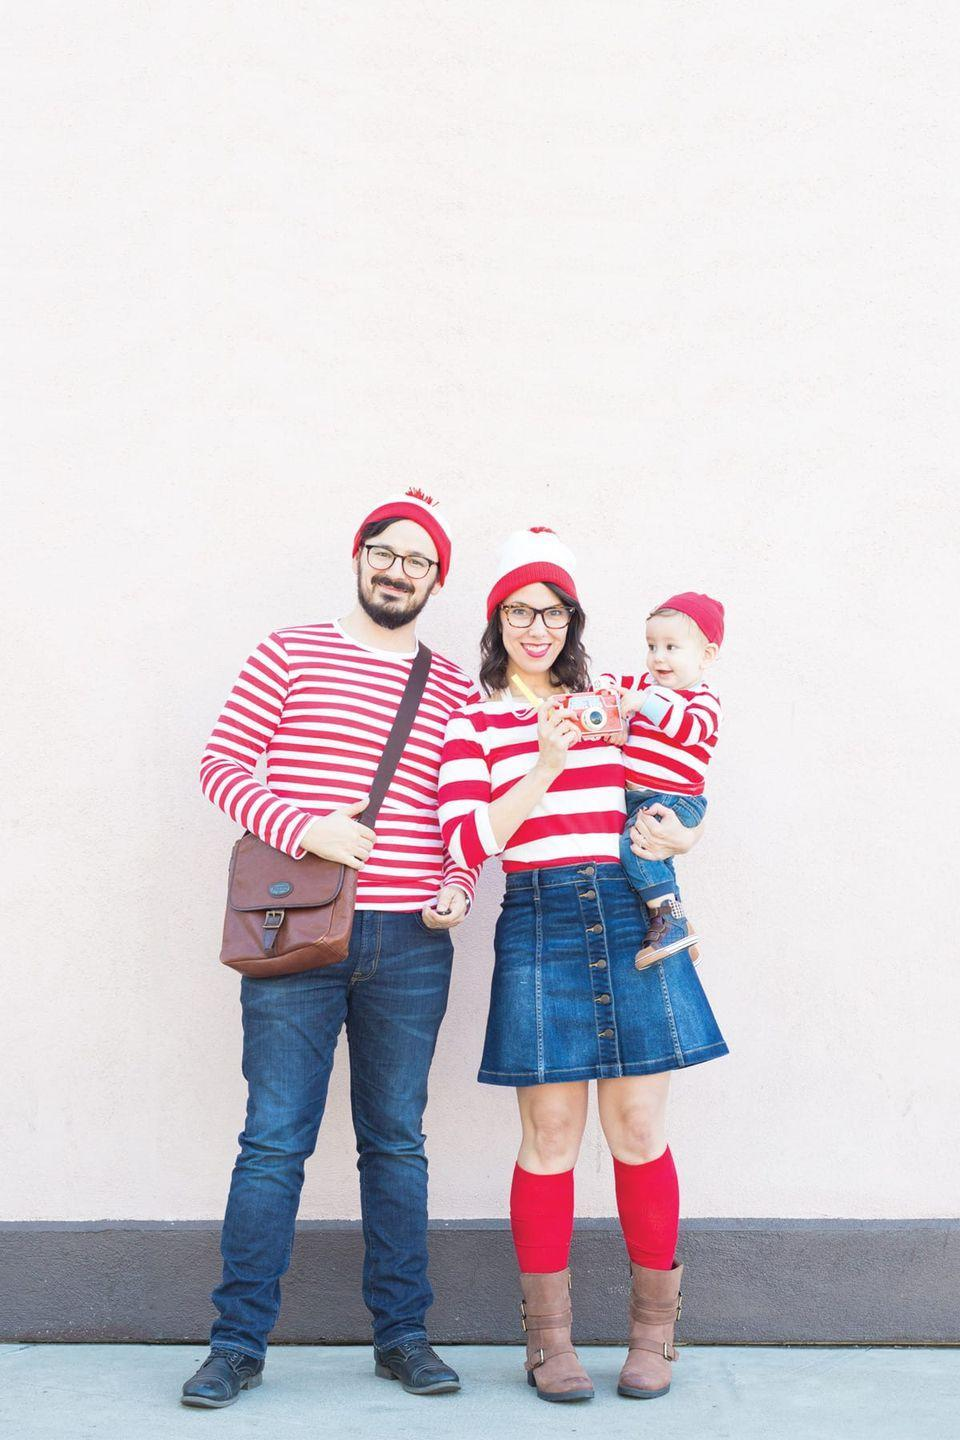 """<p>You only need a bit of striped apparel to blend in (get it?!) with your whole crew.</p><p><strong>Get the tutorial at <a href=""""https://lovelyindeed.com/wheres-waldo-family-halloween-costumes/"""" rel=""""nofollow noopener"""" target=""""_blank"""" data-ylk=""""slk:Lovely Indeed"""" class=""""link rapid-noclick-resp"""">Lovely Indeed</a>.</strong></p><p><strong><a class=""""link rapid-noclick-resp"""" href=""""https://www.amazon.com/Womens-Sleeve-Striped-Shirts-HS6447-5/dp/B01LXCB95T?tag=syn-yahoo-20&ascsubtag=%5Bartid%7C10050.g.28181767%5Bsrc%7Cyahoo-us"""" rel=""""nofollow noopener"""" target=""""_blank"""" data-ylk=""""slk:SHOP STRIPED SHIRTS"""">SHOP STRIPED SHIRTS</a><br></strong></p>"""